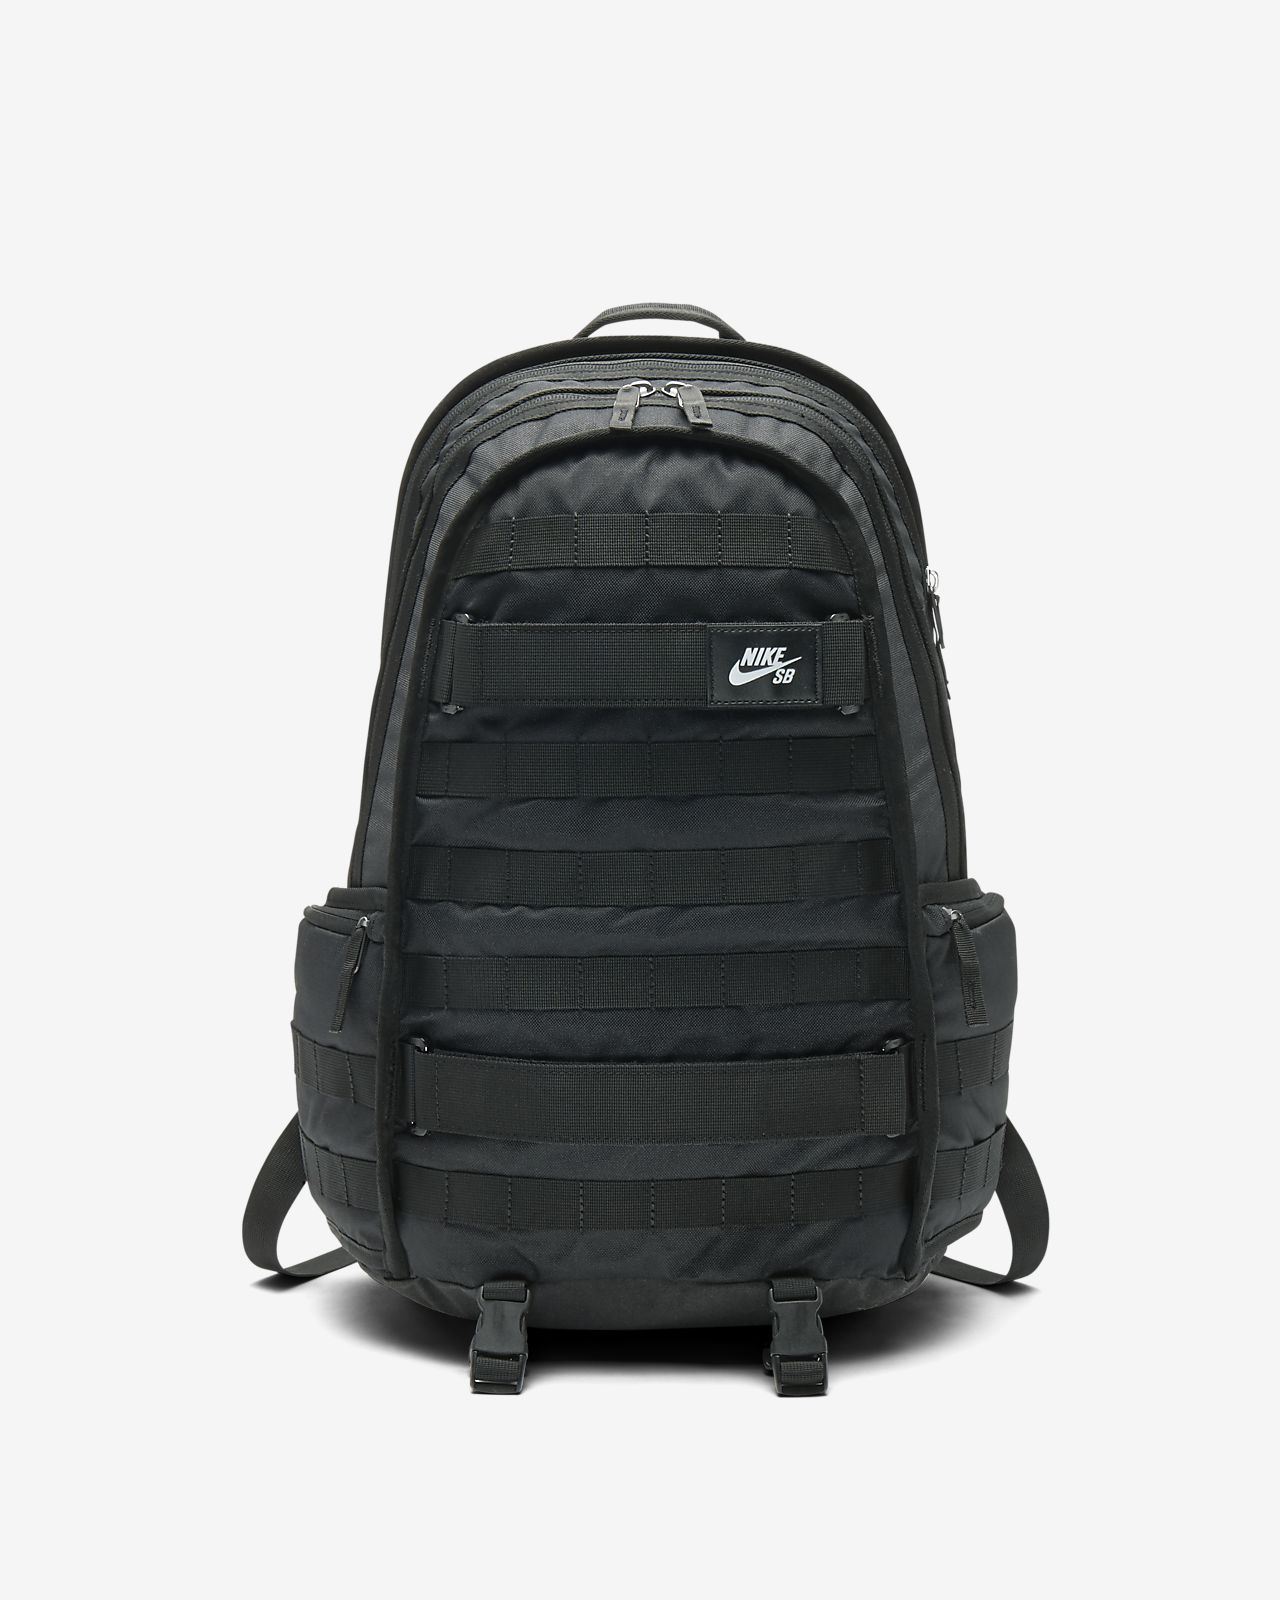 78971b17b0 Nike SB RPM Skateboarding Backpack. Nike.com GB